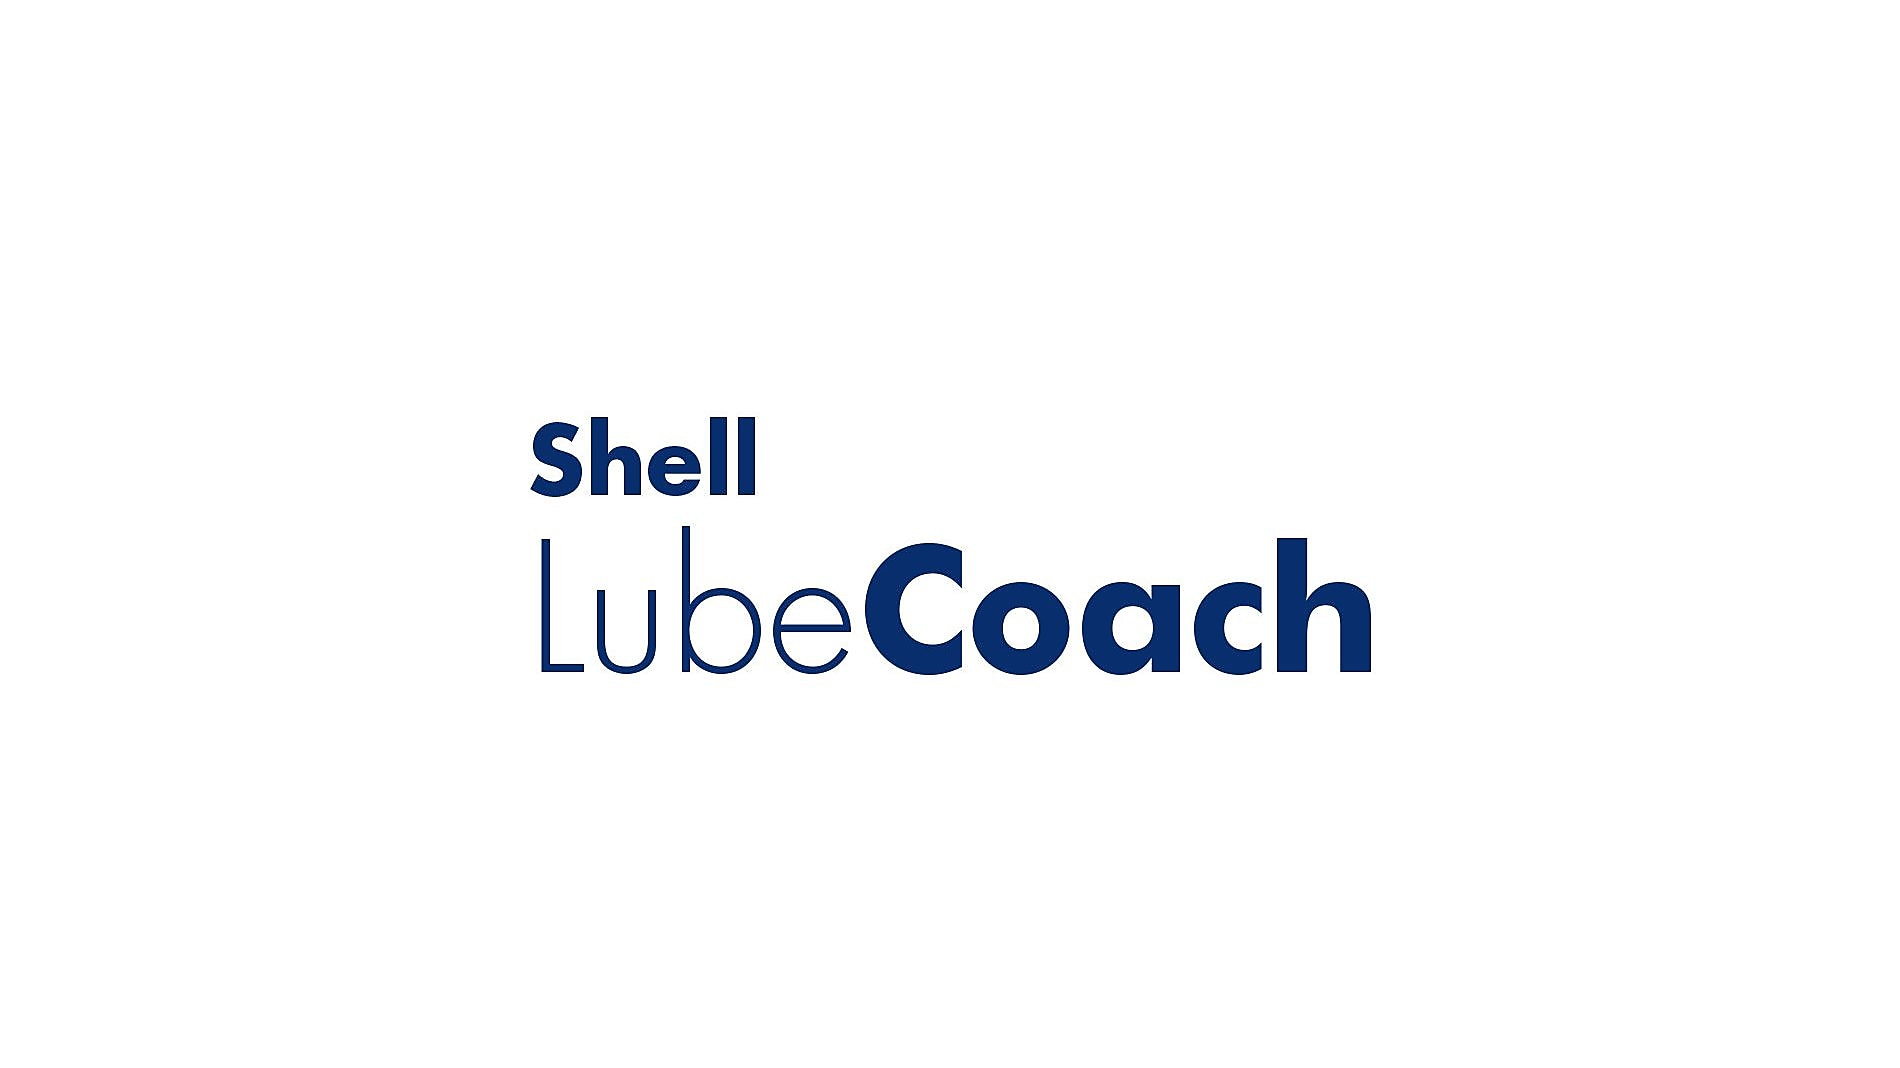 Find out more about LubeCoach